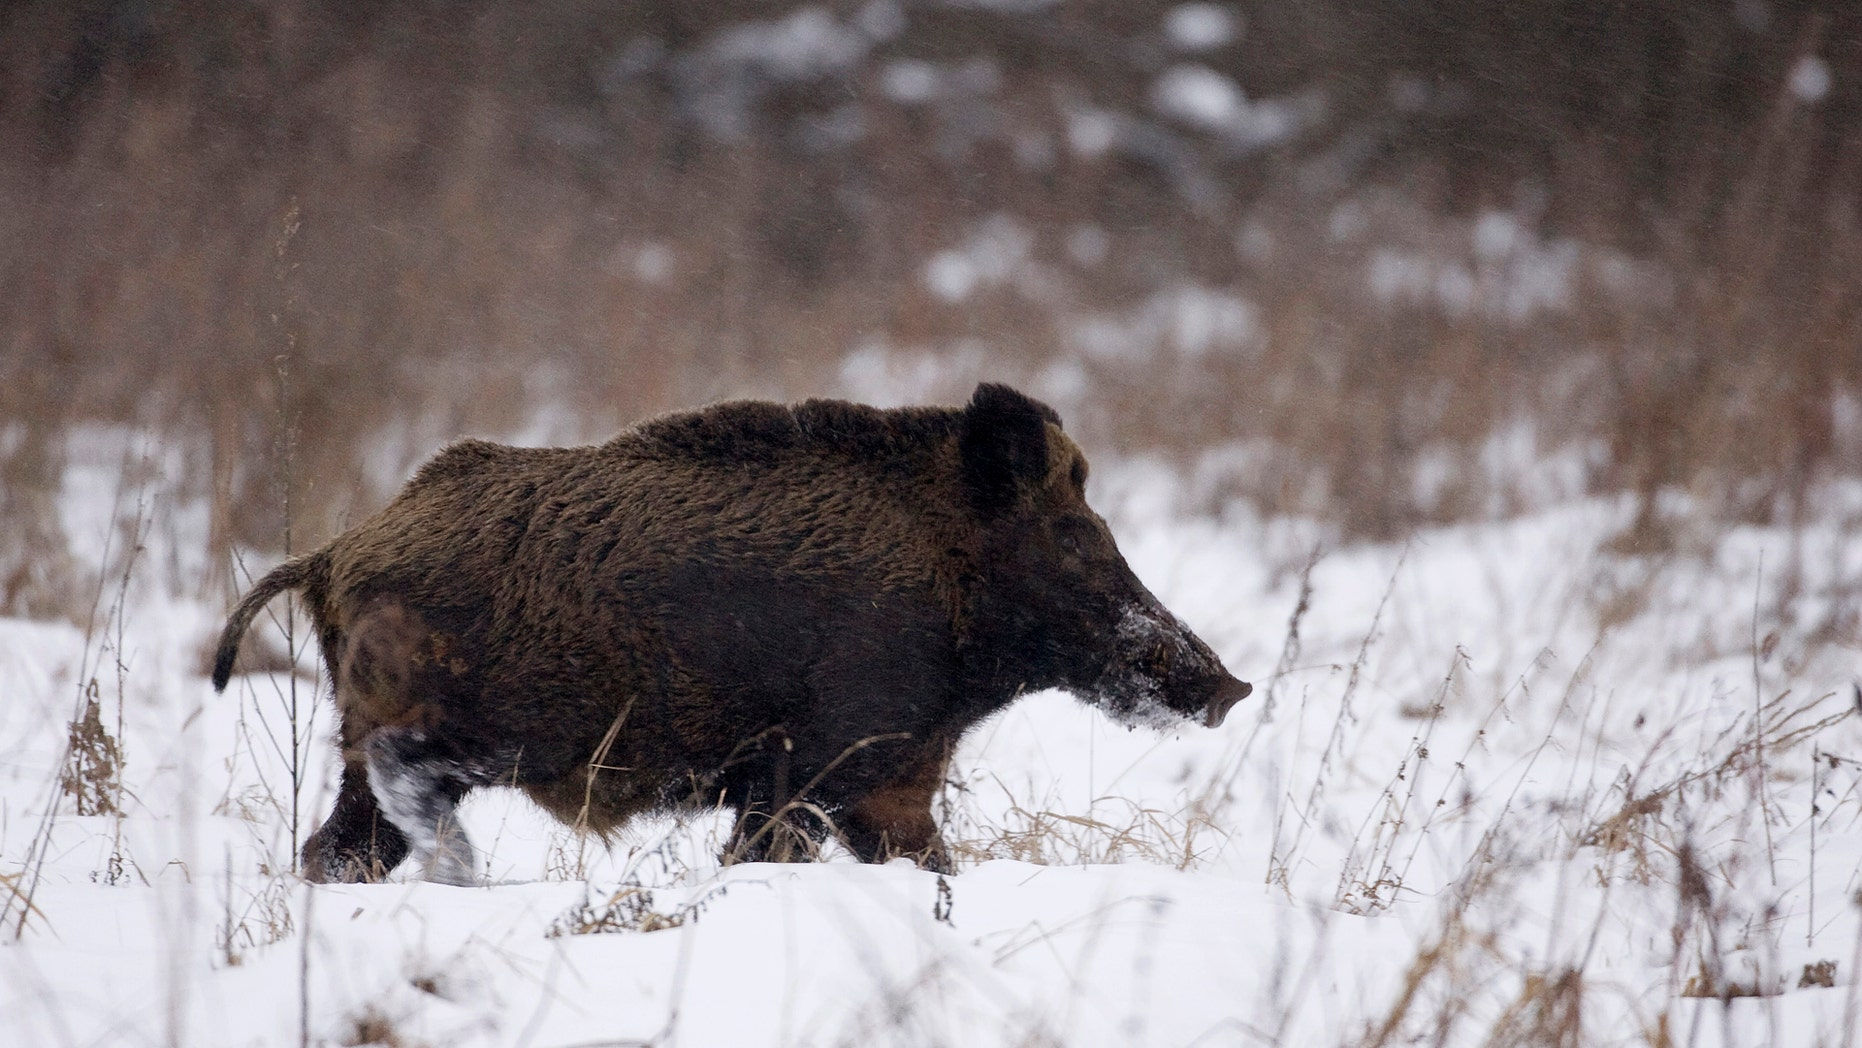 File photo - a wild boar runs in the 18 miles exclusion zone around the Chernobyl nuclear reactor near the village of Babchin, some 217 miles southeast of Minsk, January 9, 2009. (REUTERS/Vasily Fedosenko)